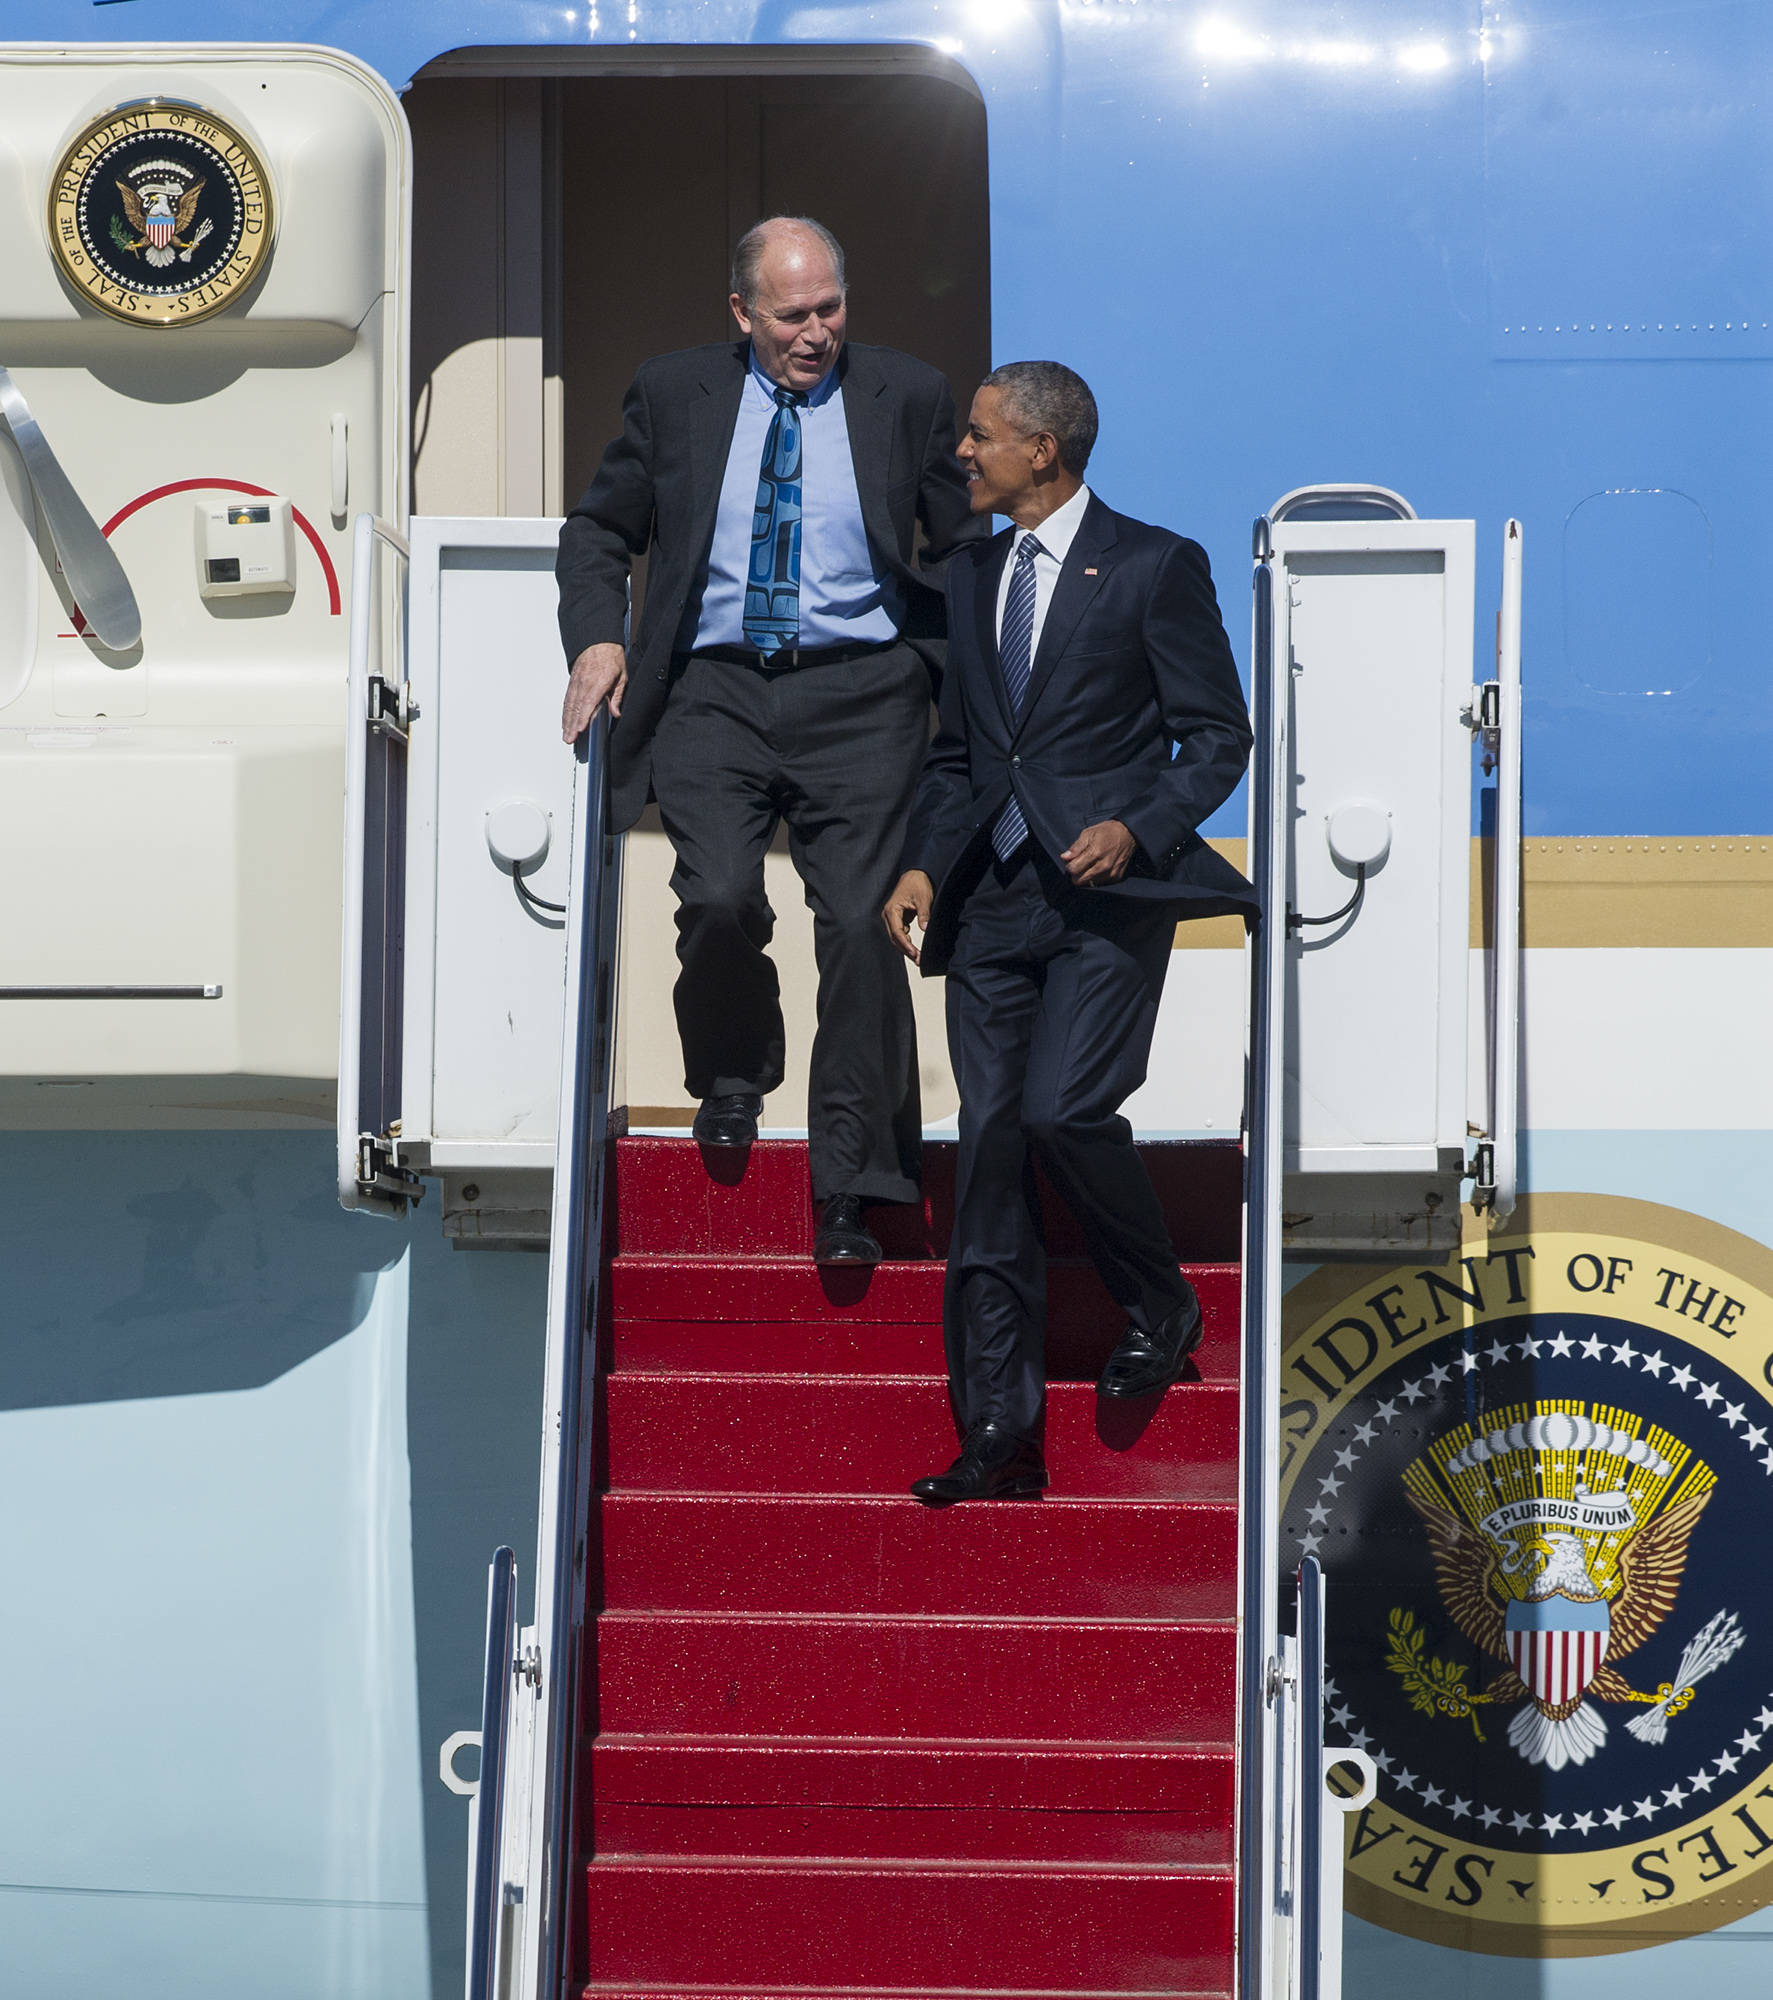 In this Aug. 31, 2015 photo, President Barack Obama arrives on Air Force One at Joint Base Elmendorf-Richardson in Anchorage with Gov. Bill Walker. (Michael Penn | Juneau Empire File)